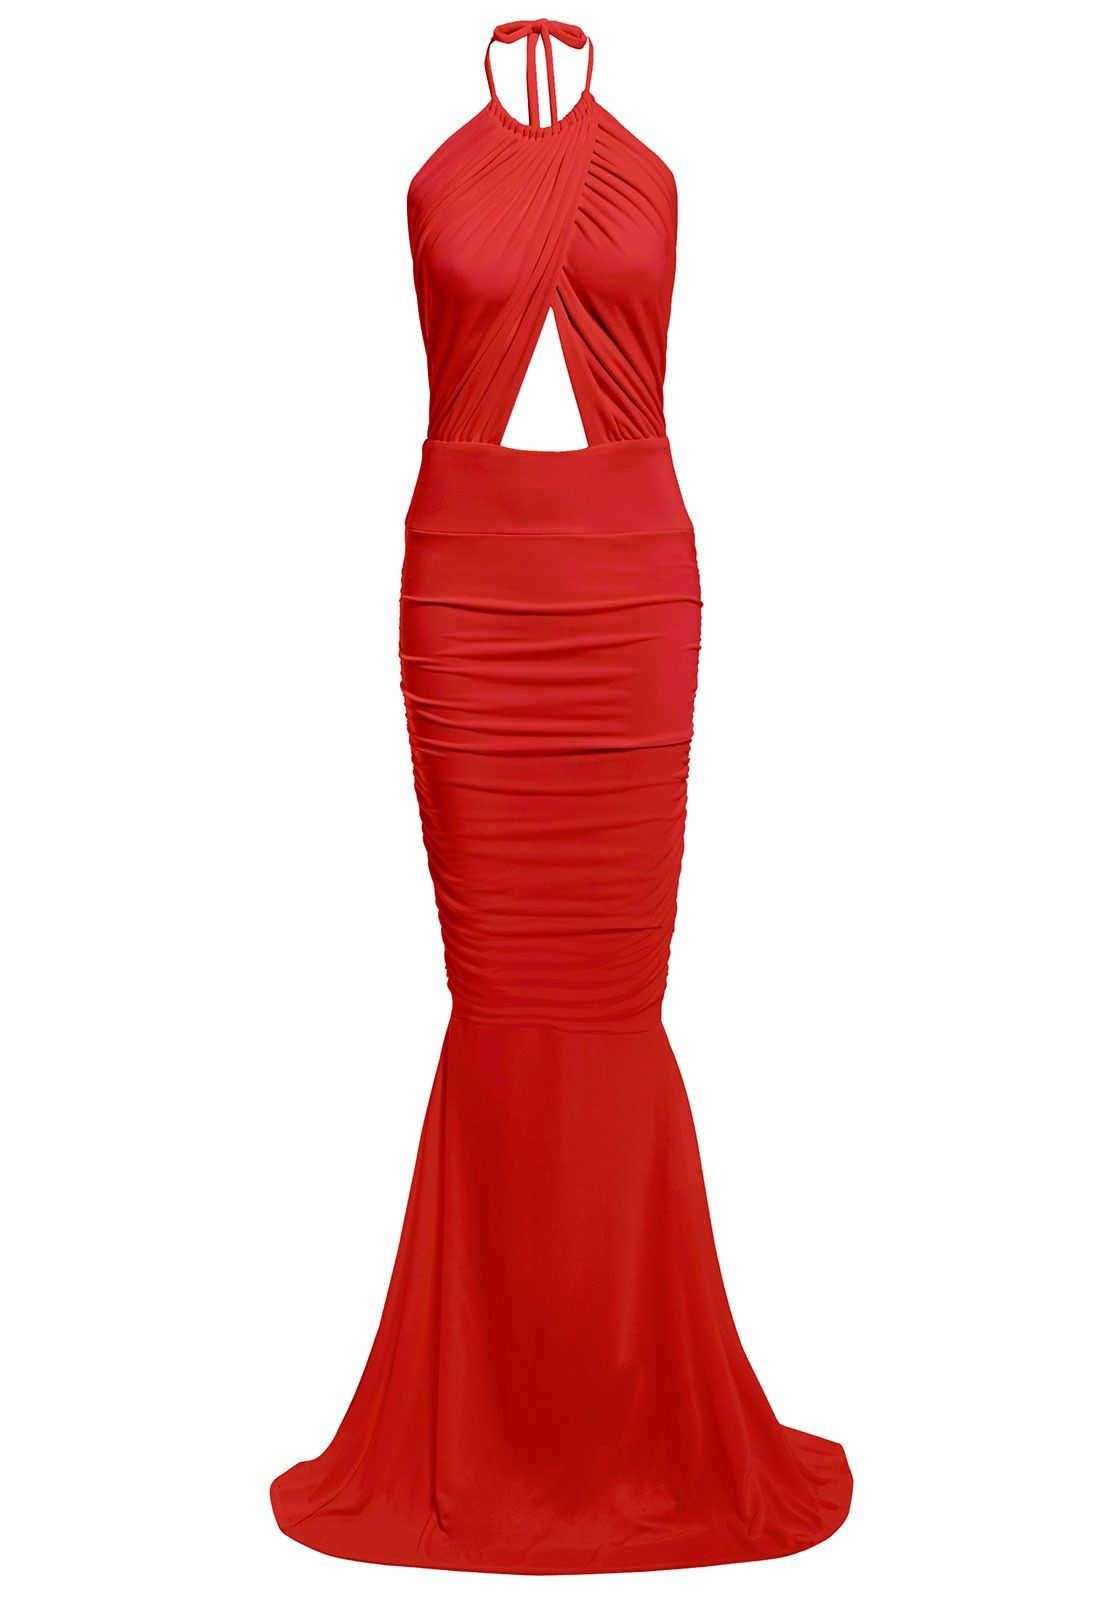 Honor Gold Erin Maxi Dress With Fishtail in Red - Evening dresses -  Occasions d5cadc9d5